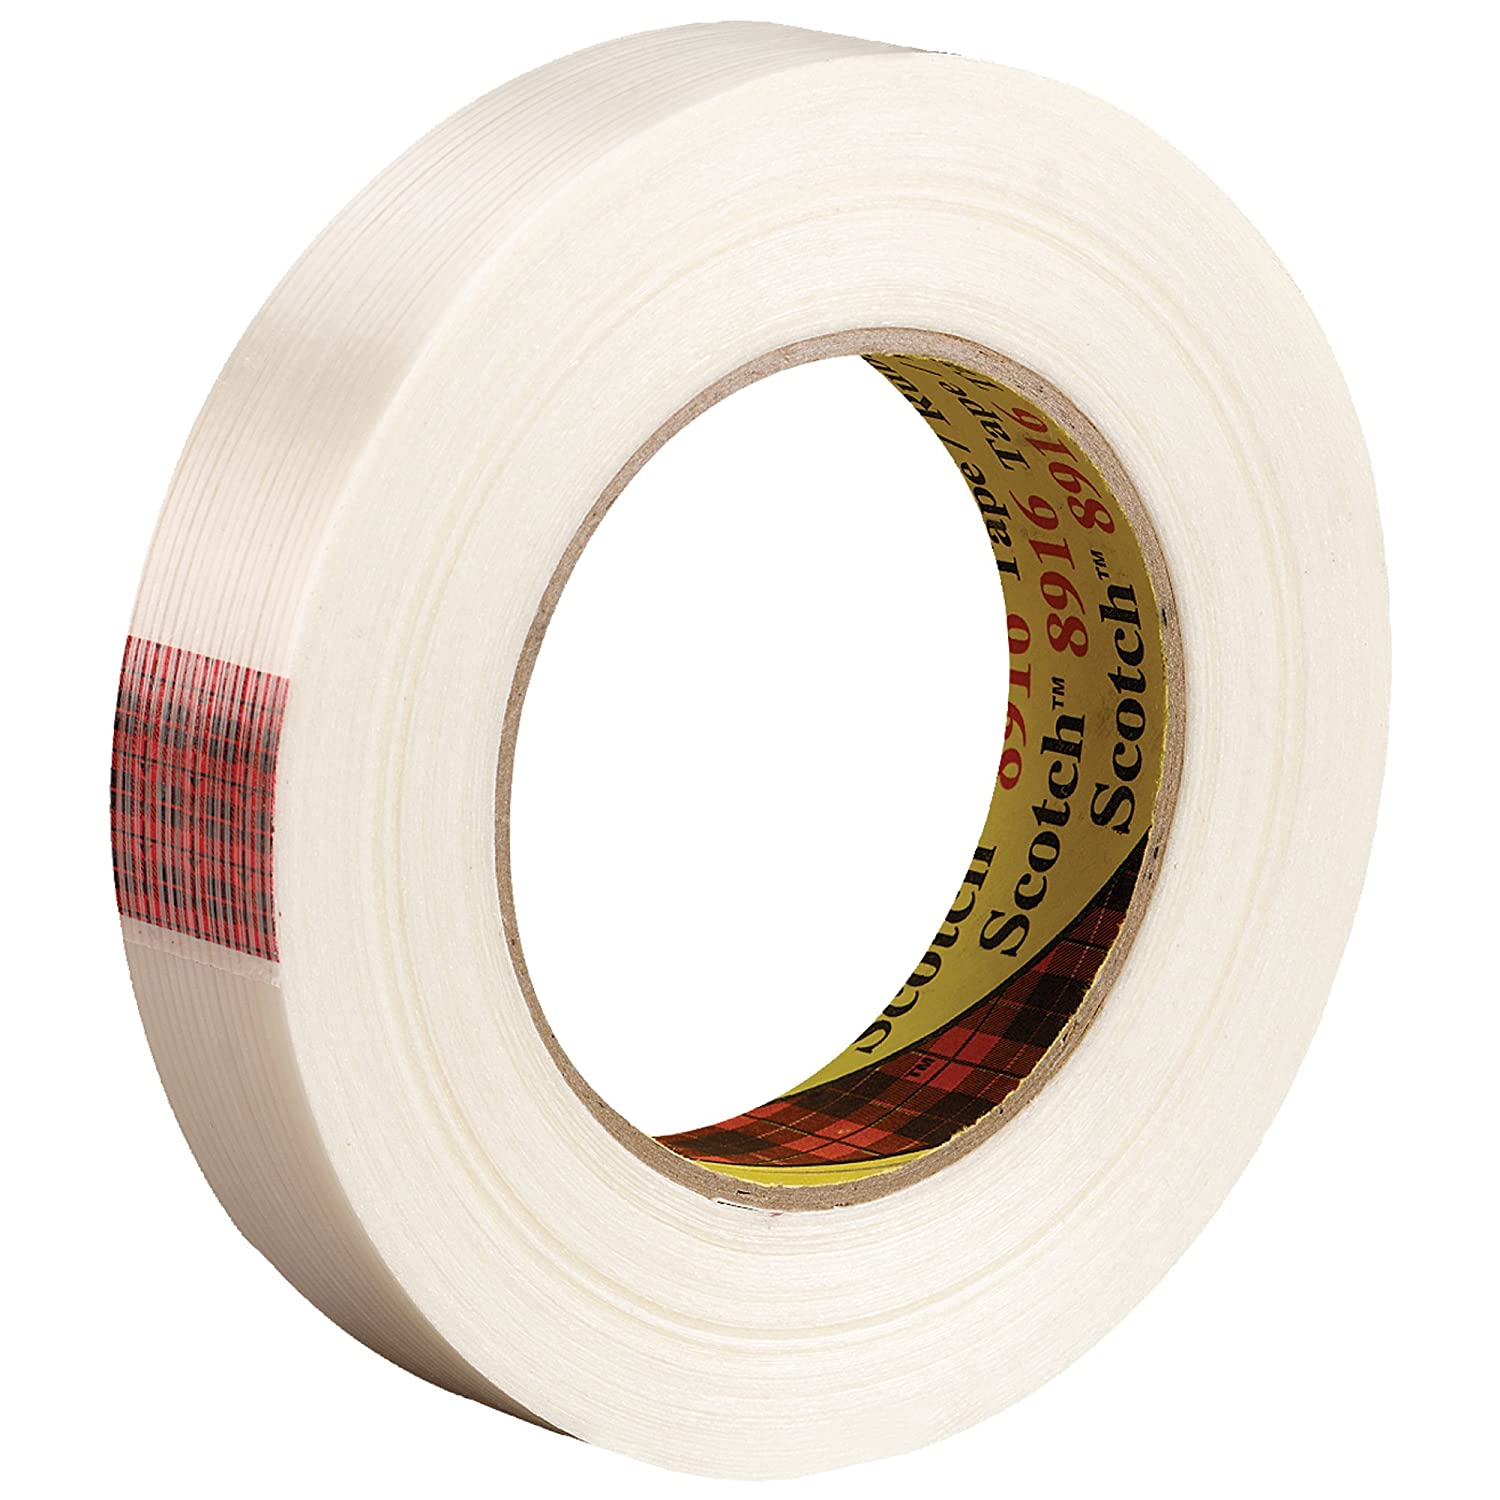 Top Pack Baltimore Mall Supply 3M 8916 Strapping Tape 6.0 4